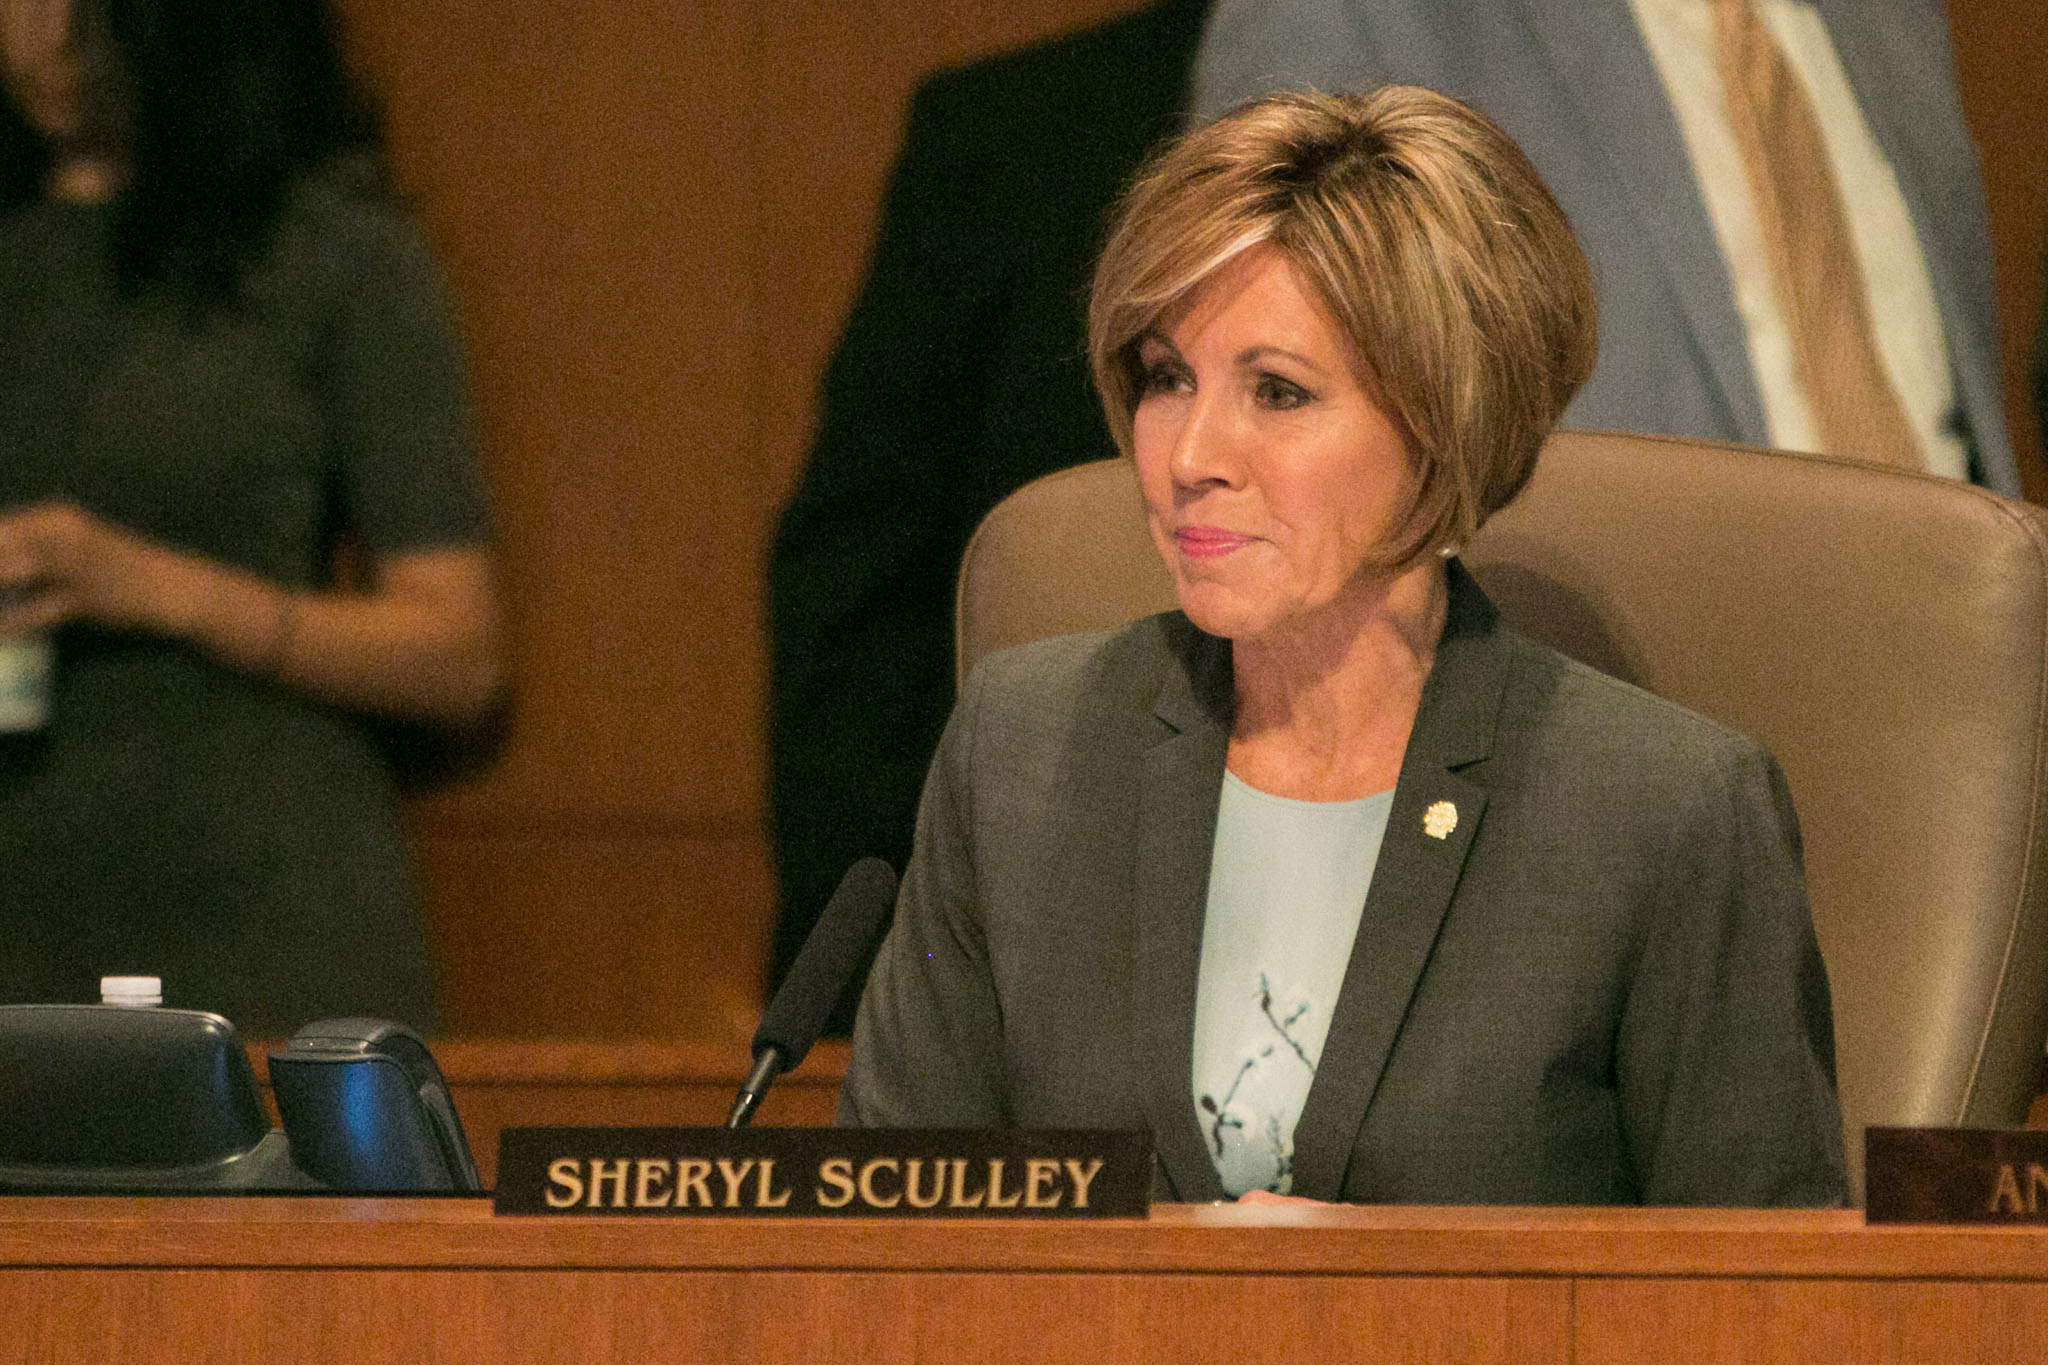 City Manager Sheryl Sculley speaks to City Council.